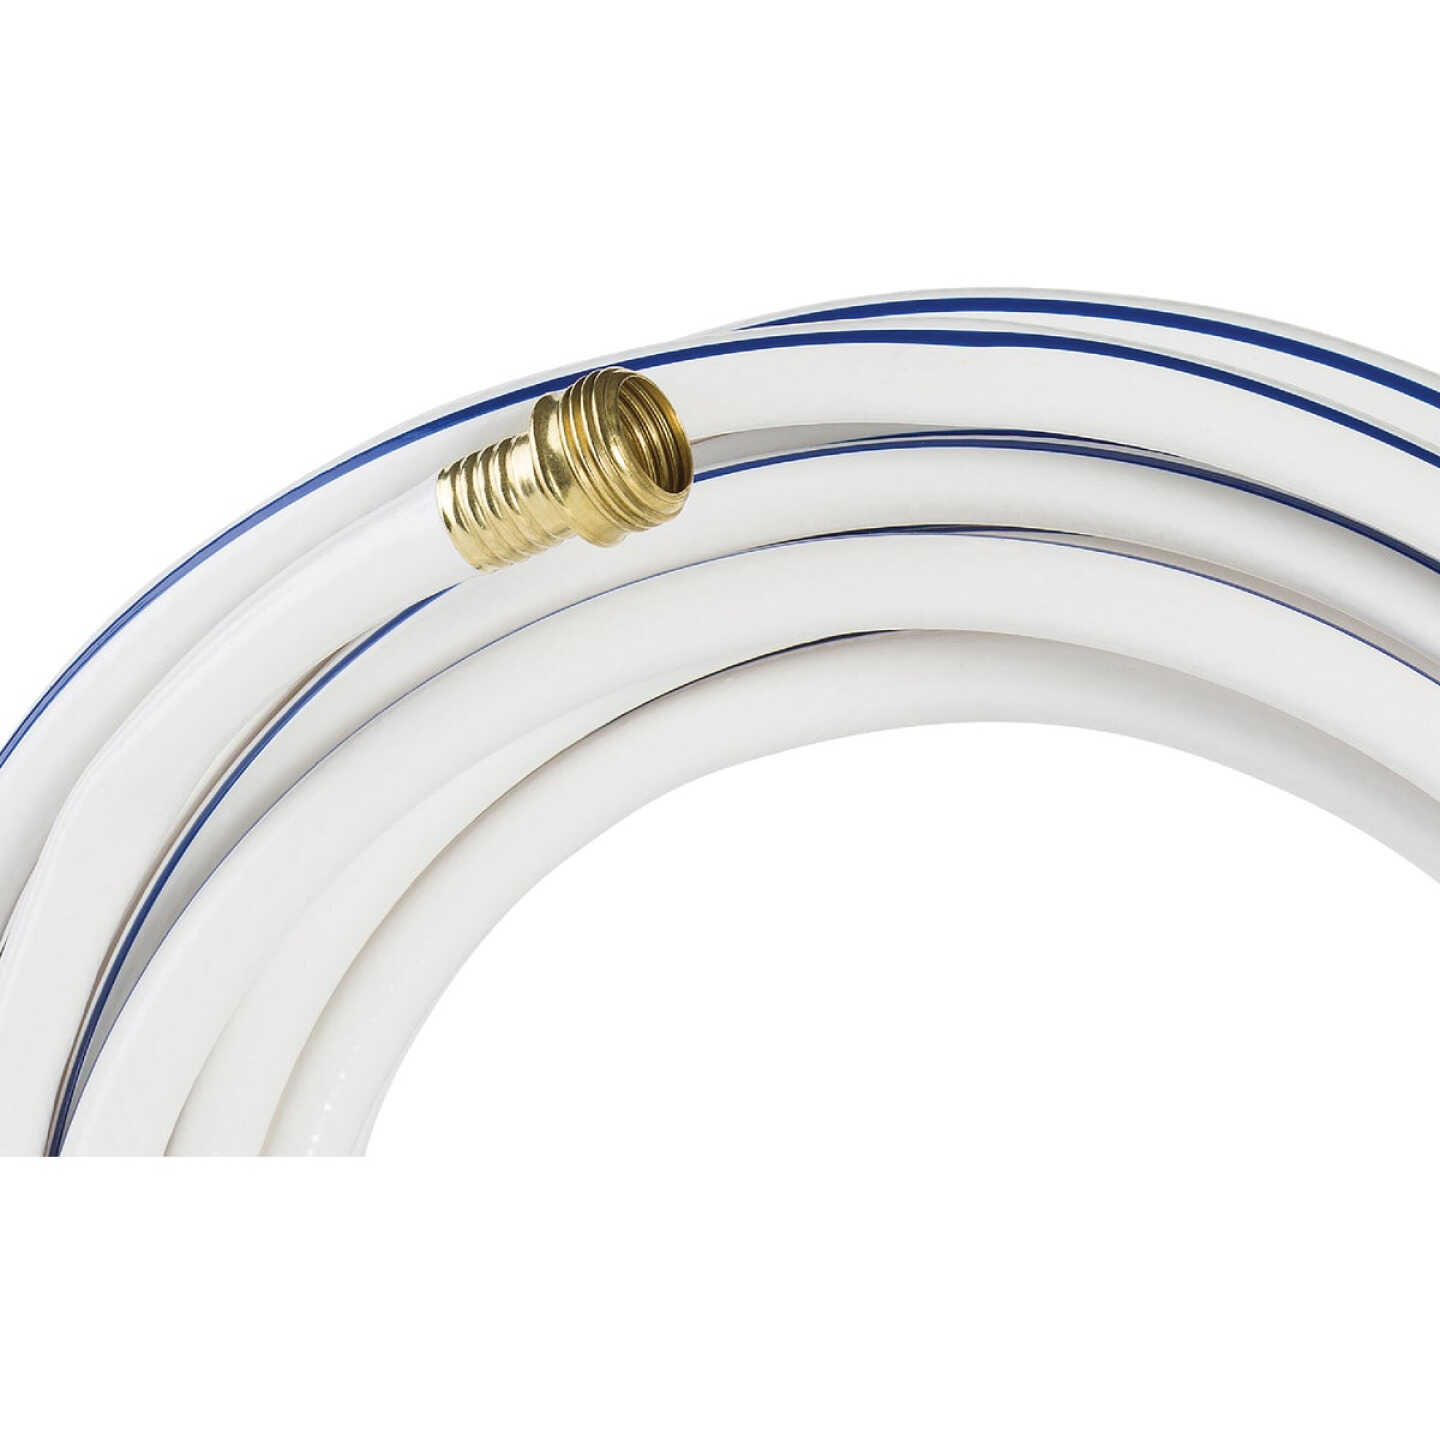 Element RV&Marine 5/8 In. Dia. x 50 Ft. L. Drinking Water Safe Hose Image 3